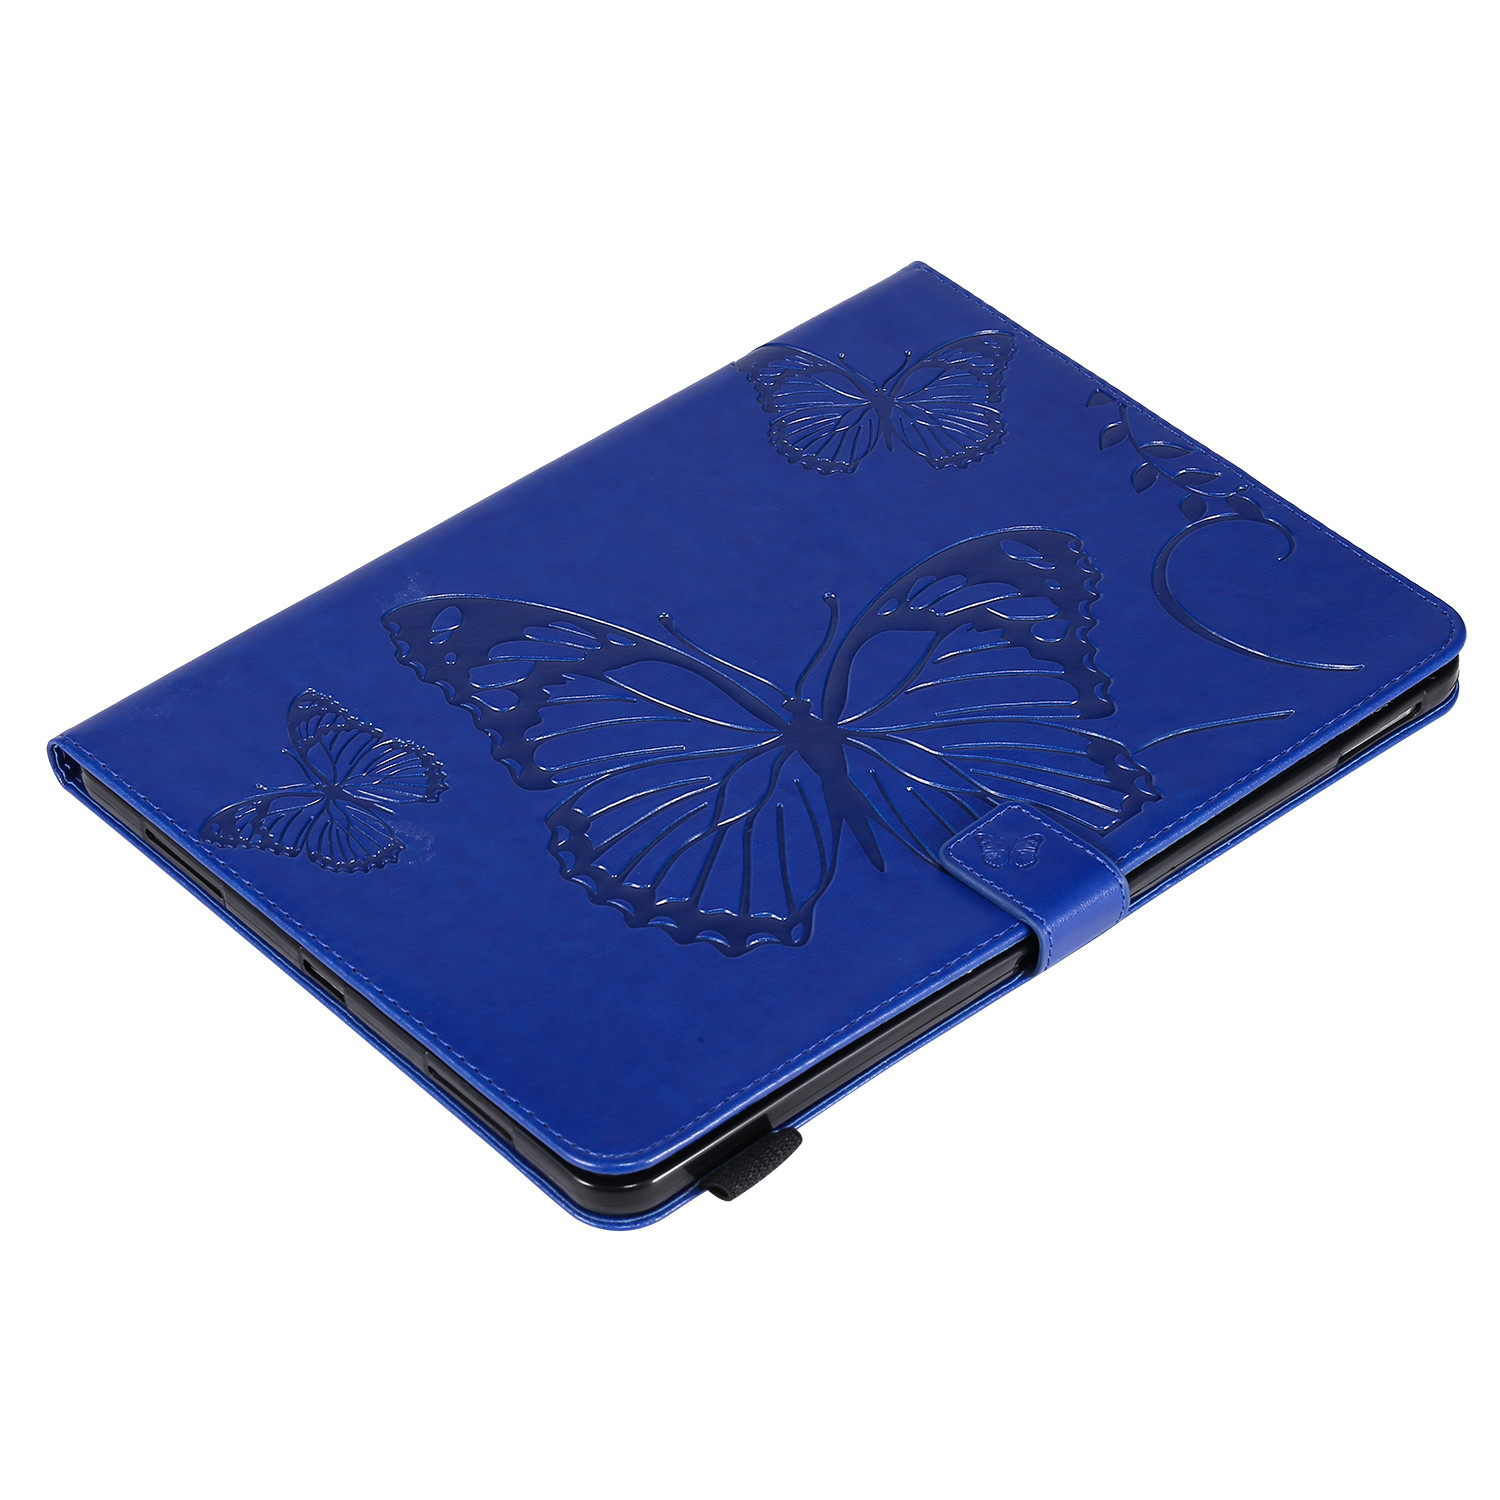 8 Beige Butterfly Tablet Fundas For iPad Pro 12 9 Case 2020 2018 Folding Folio Embossed Cover For